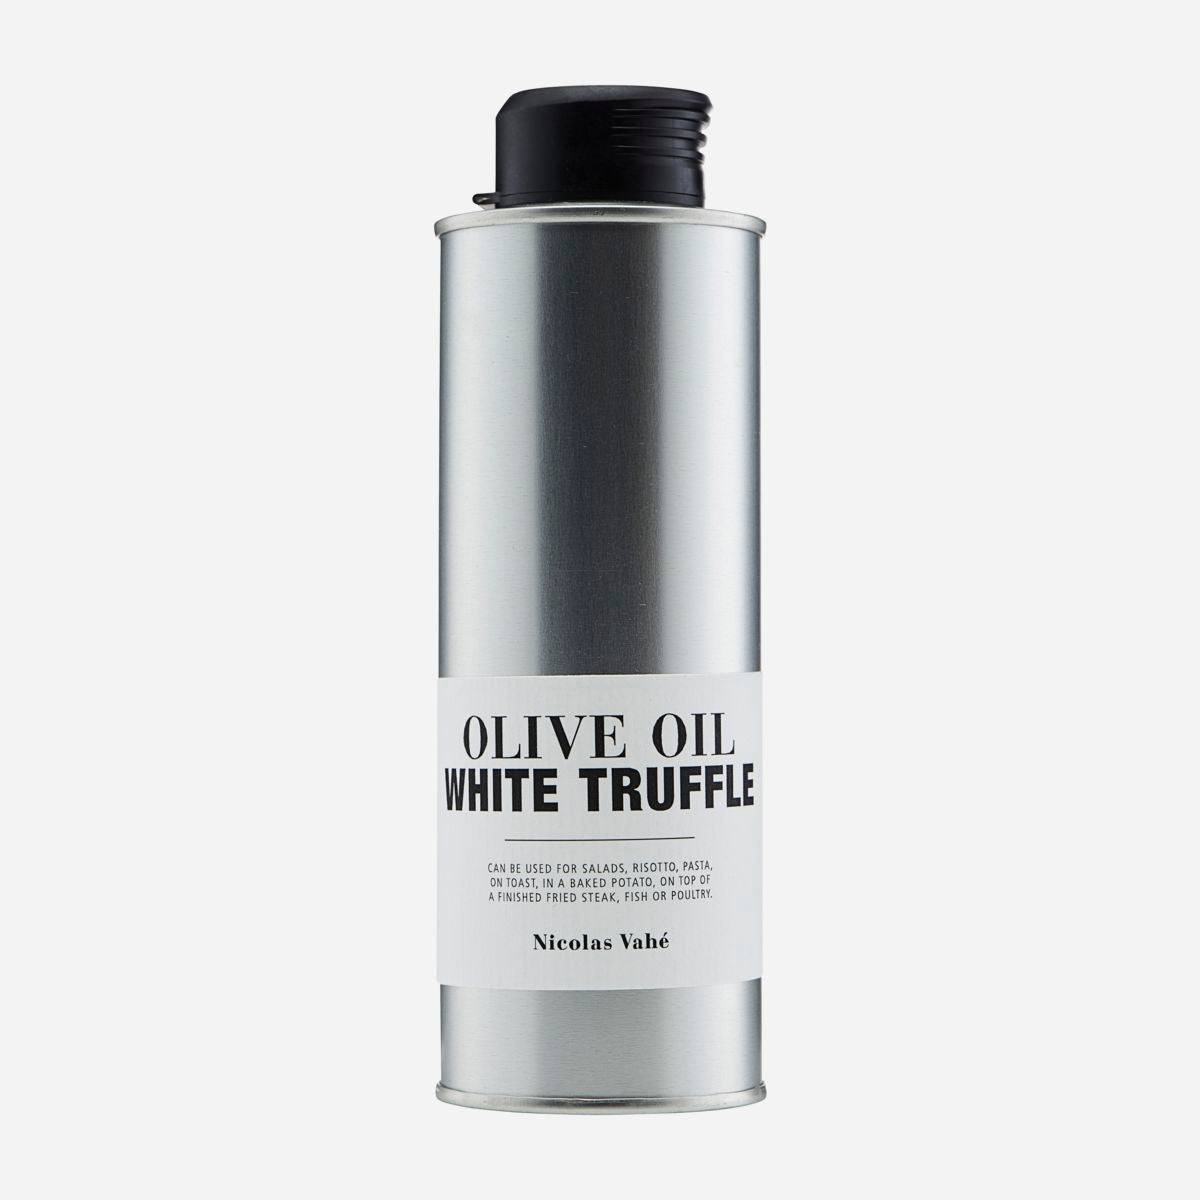 Virgin Olive Oil - Wht Truffle